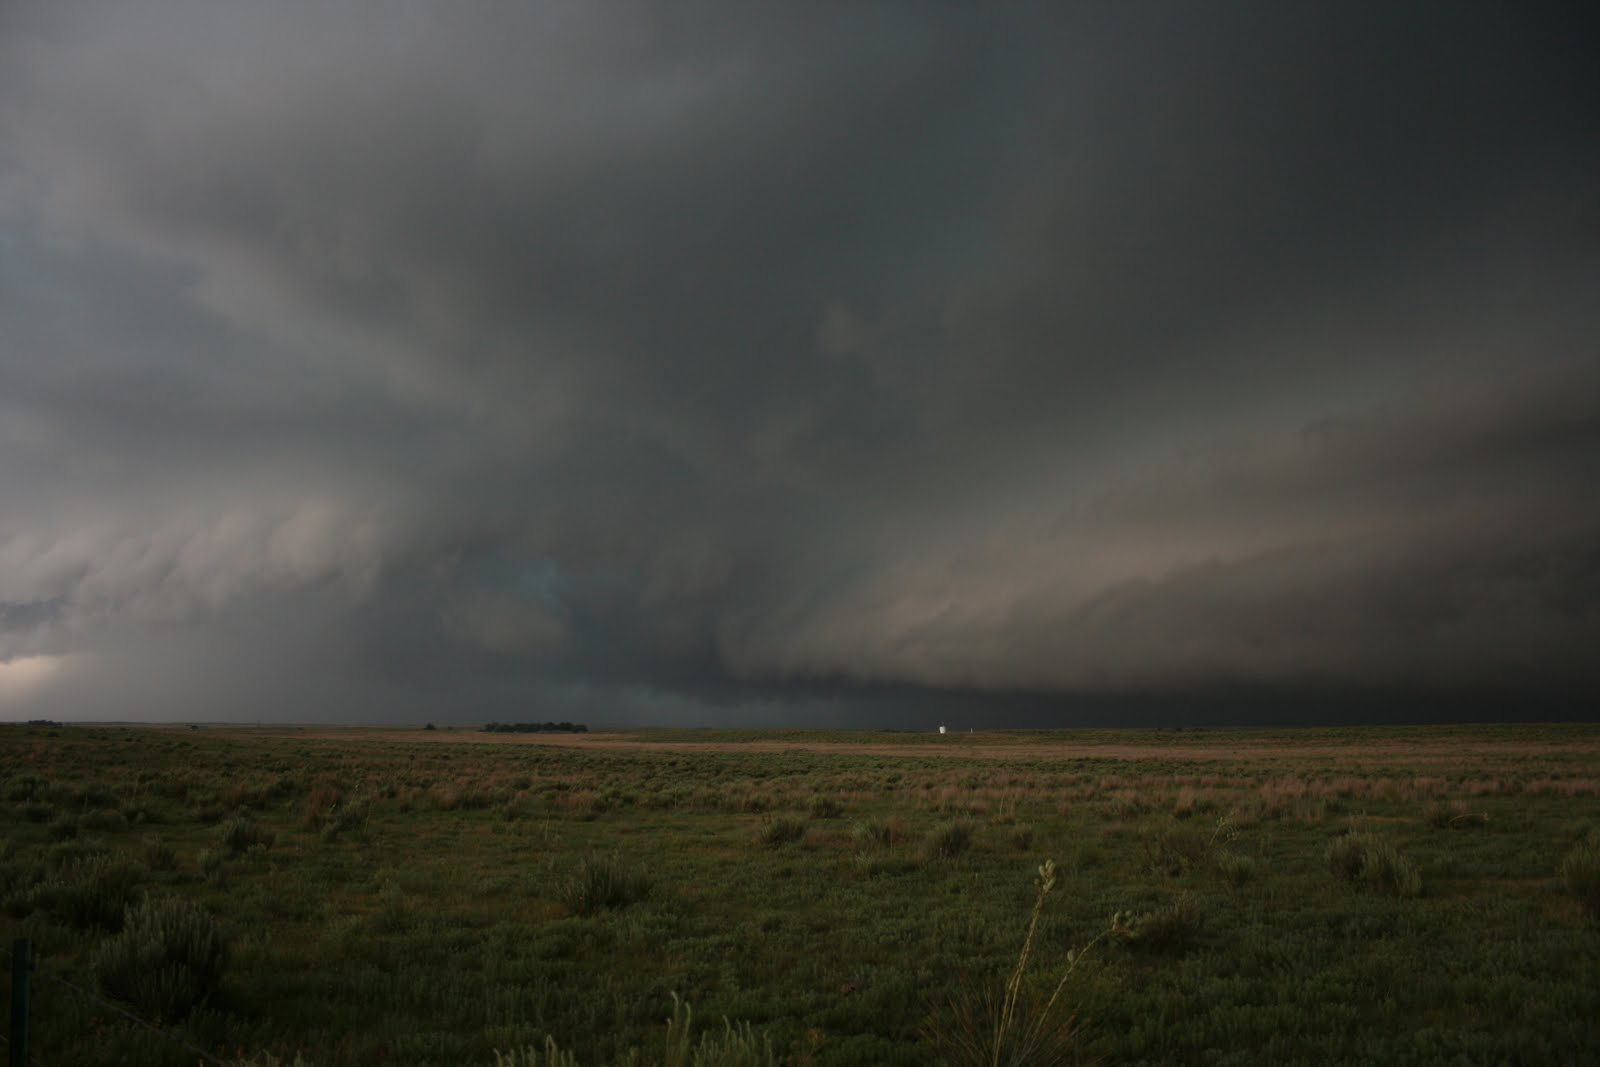 Supercell Tornado Named the slapout tornado Non Supercell Tornado